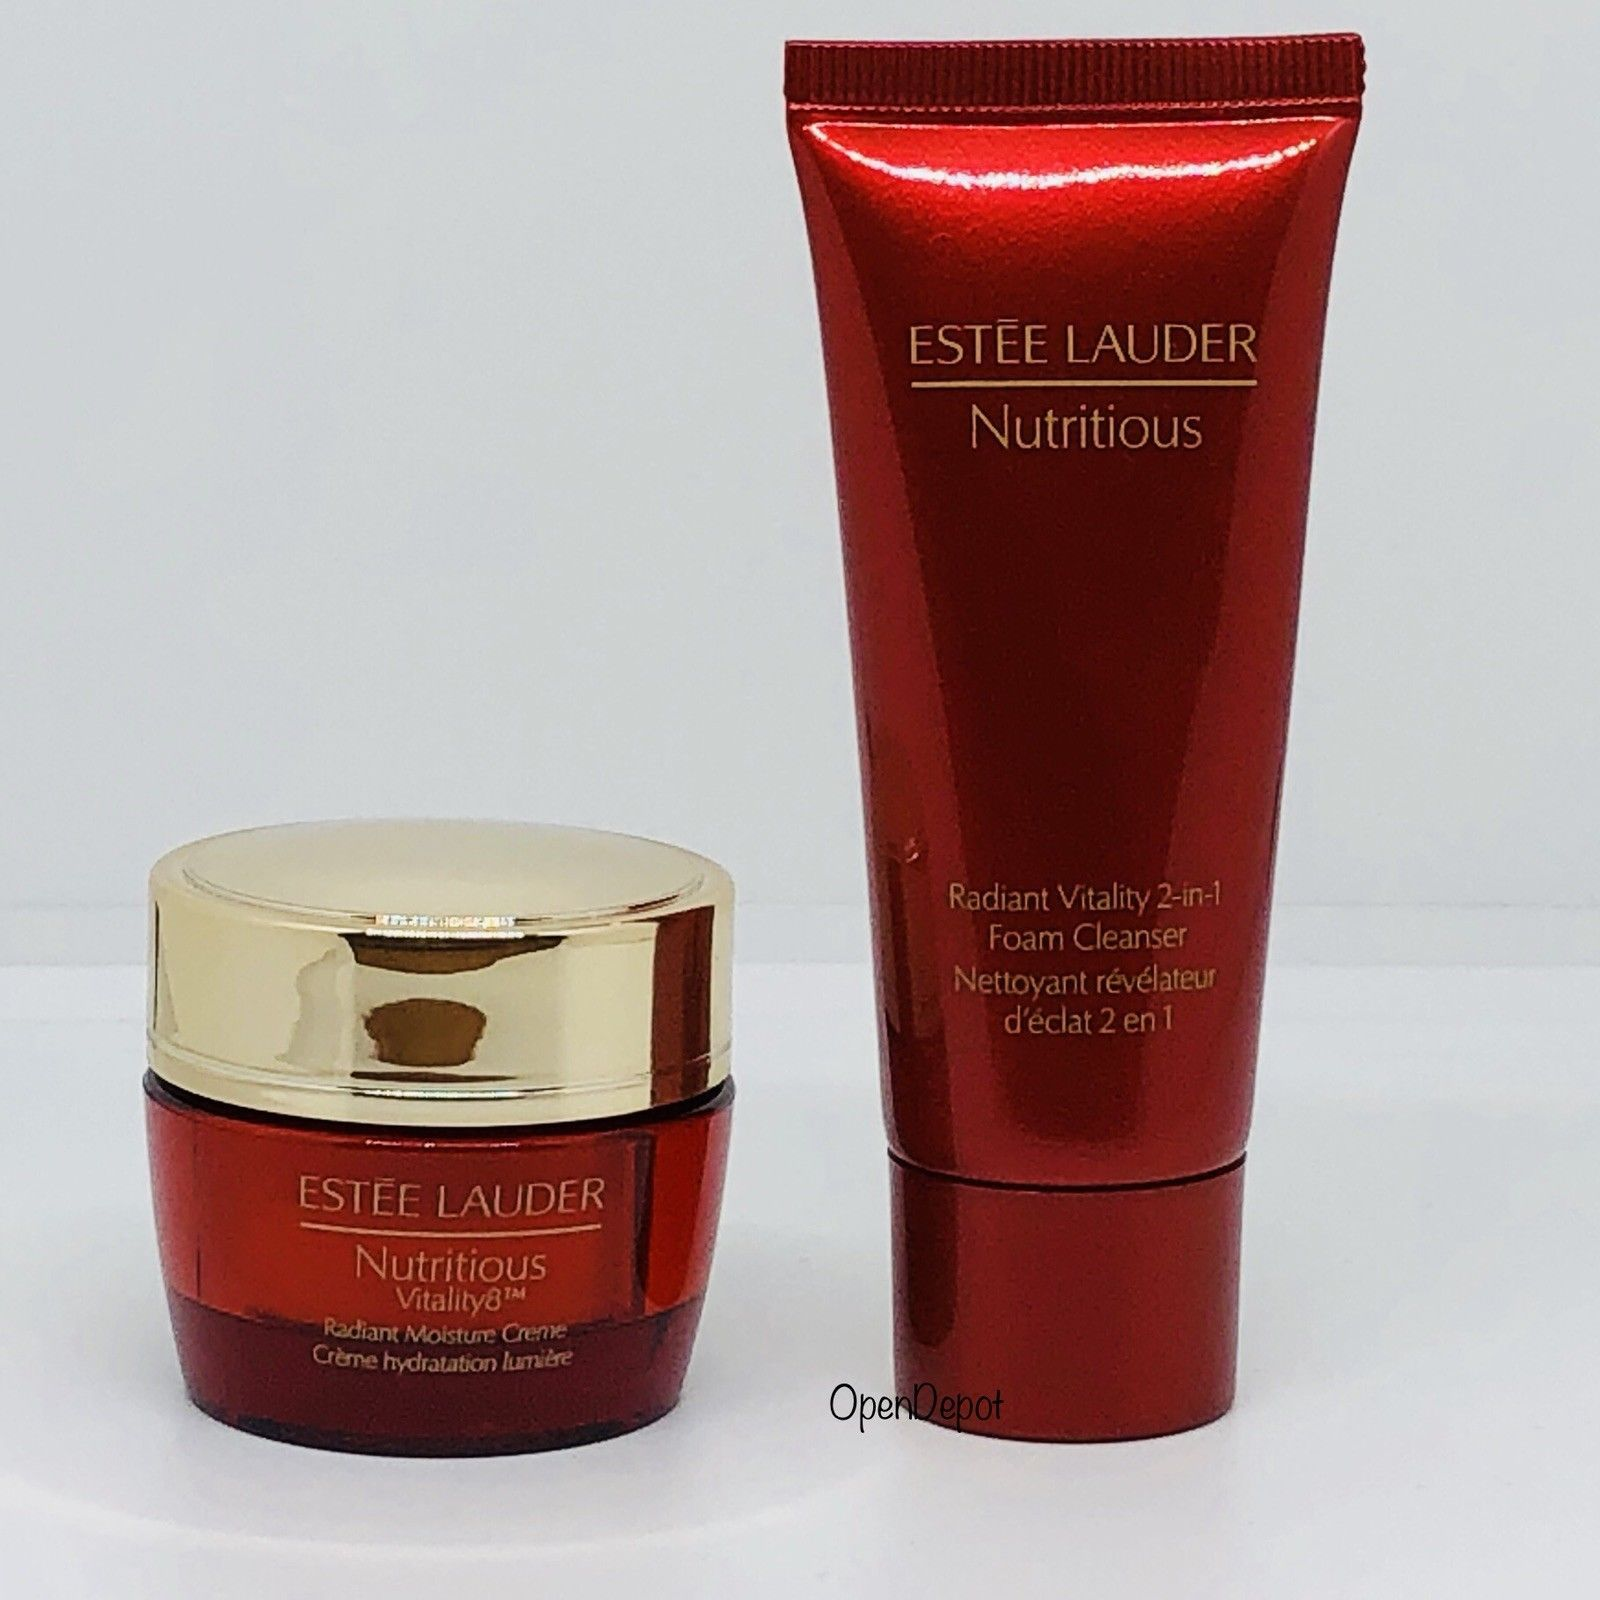 Primary image for 2PC Estee Lauder Nutritious Vitality8 Radiant Moisture Creme & Foam Cleanser DUO